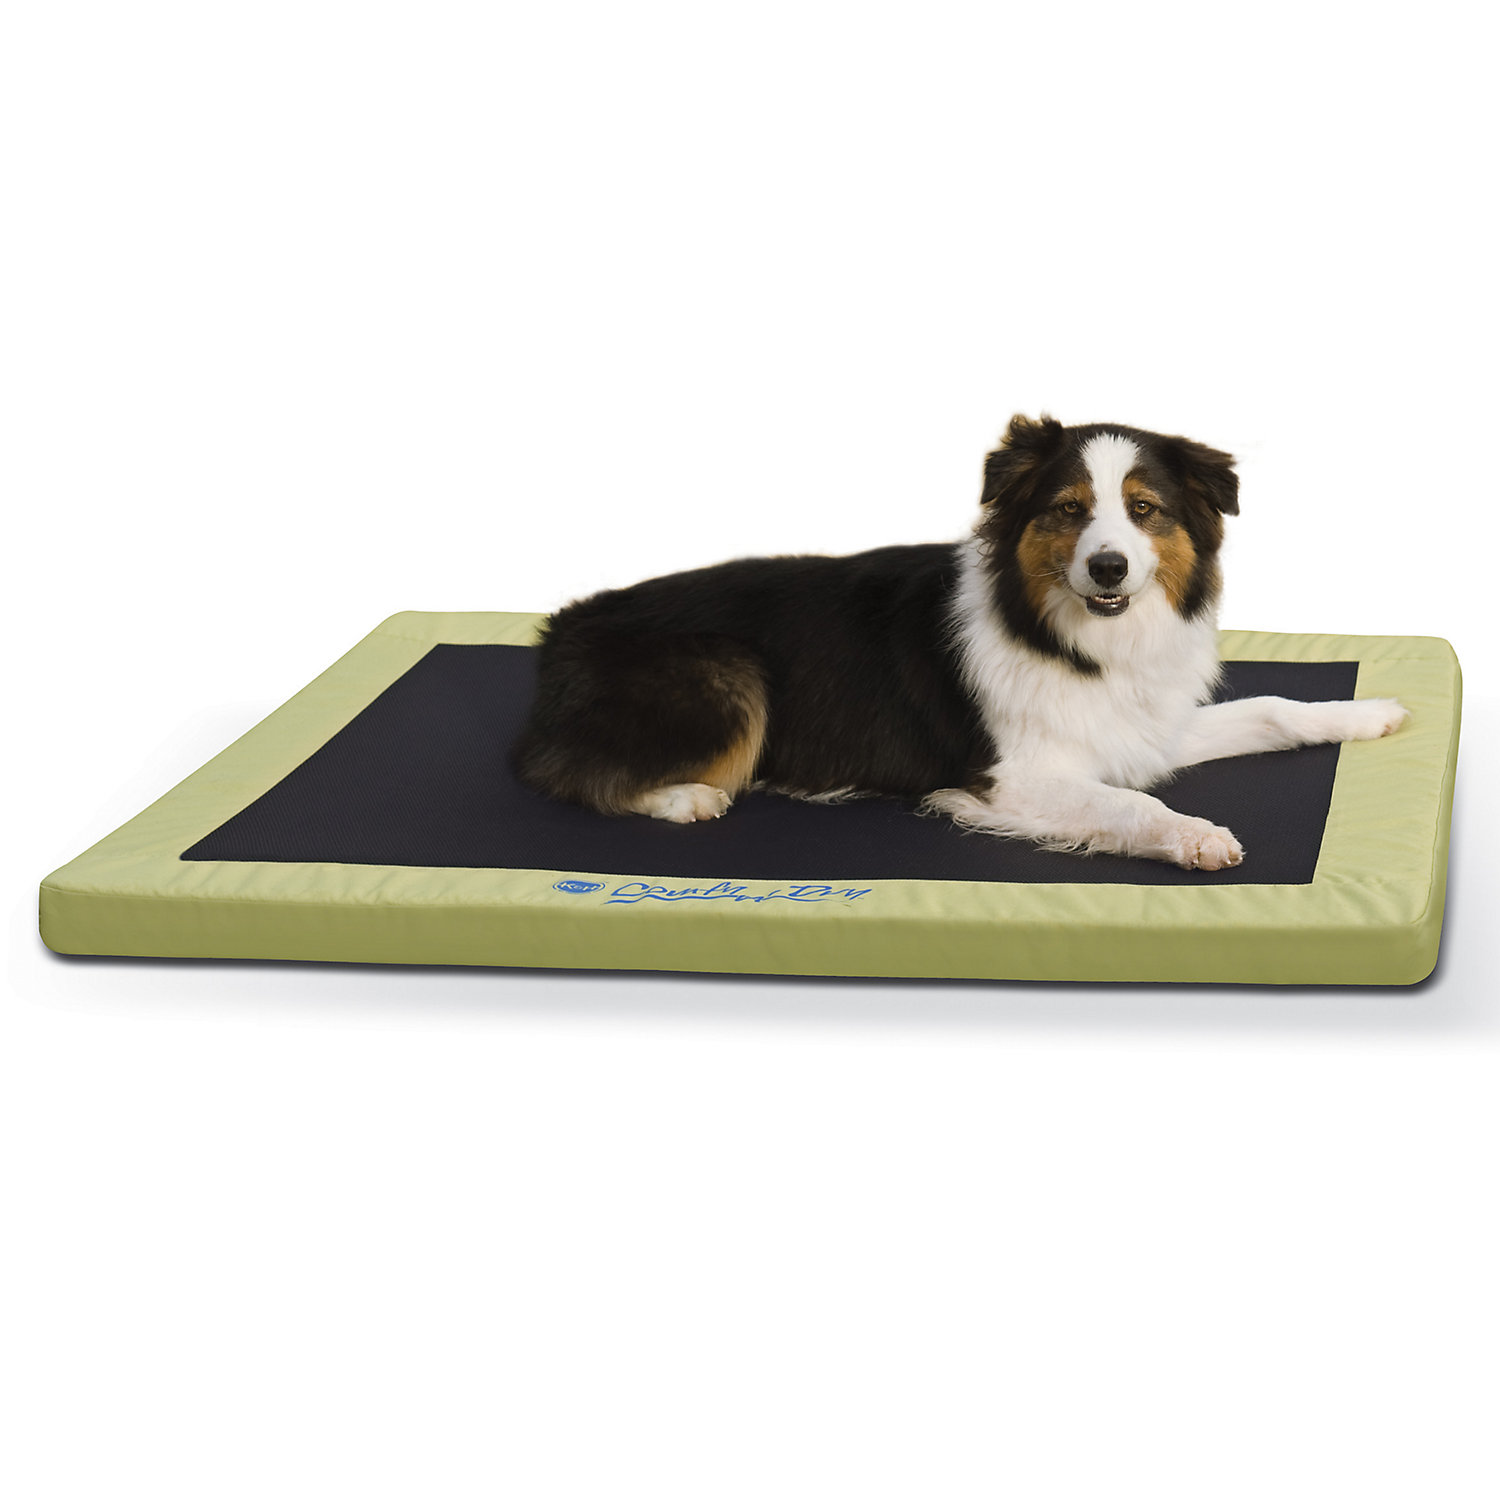 K&h Green Comfy N Dry Indoor/outdoor Orthopedic Dog Bed, 48 L X 36 W, Large